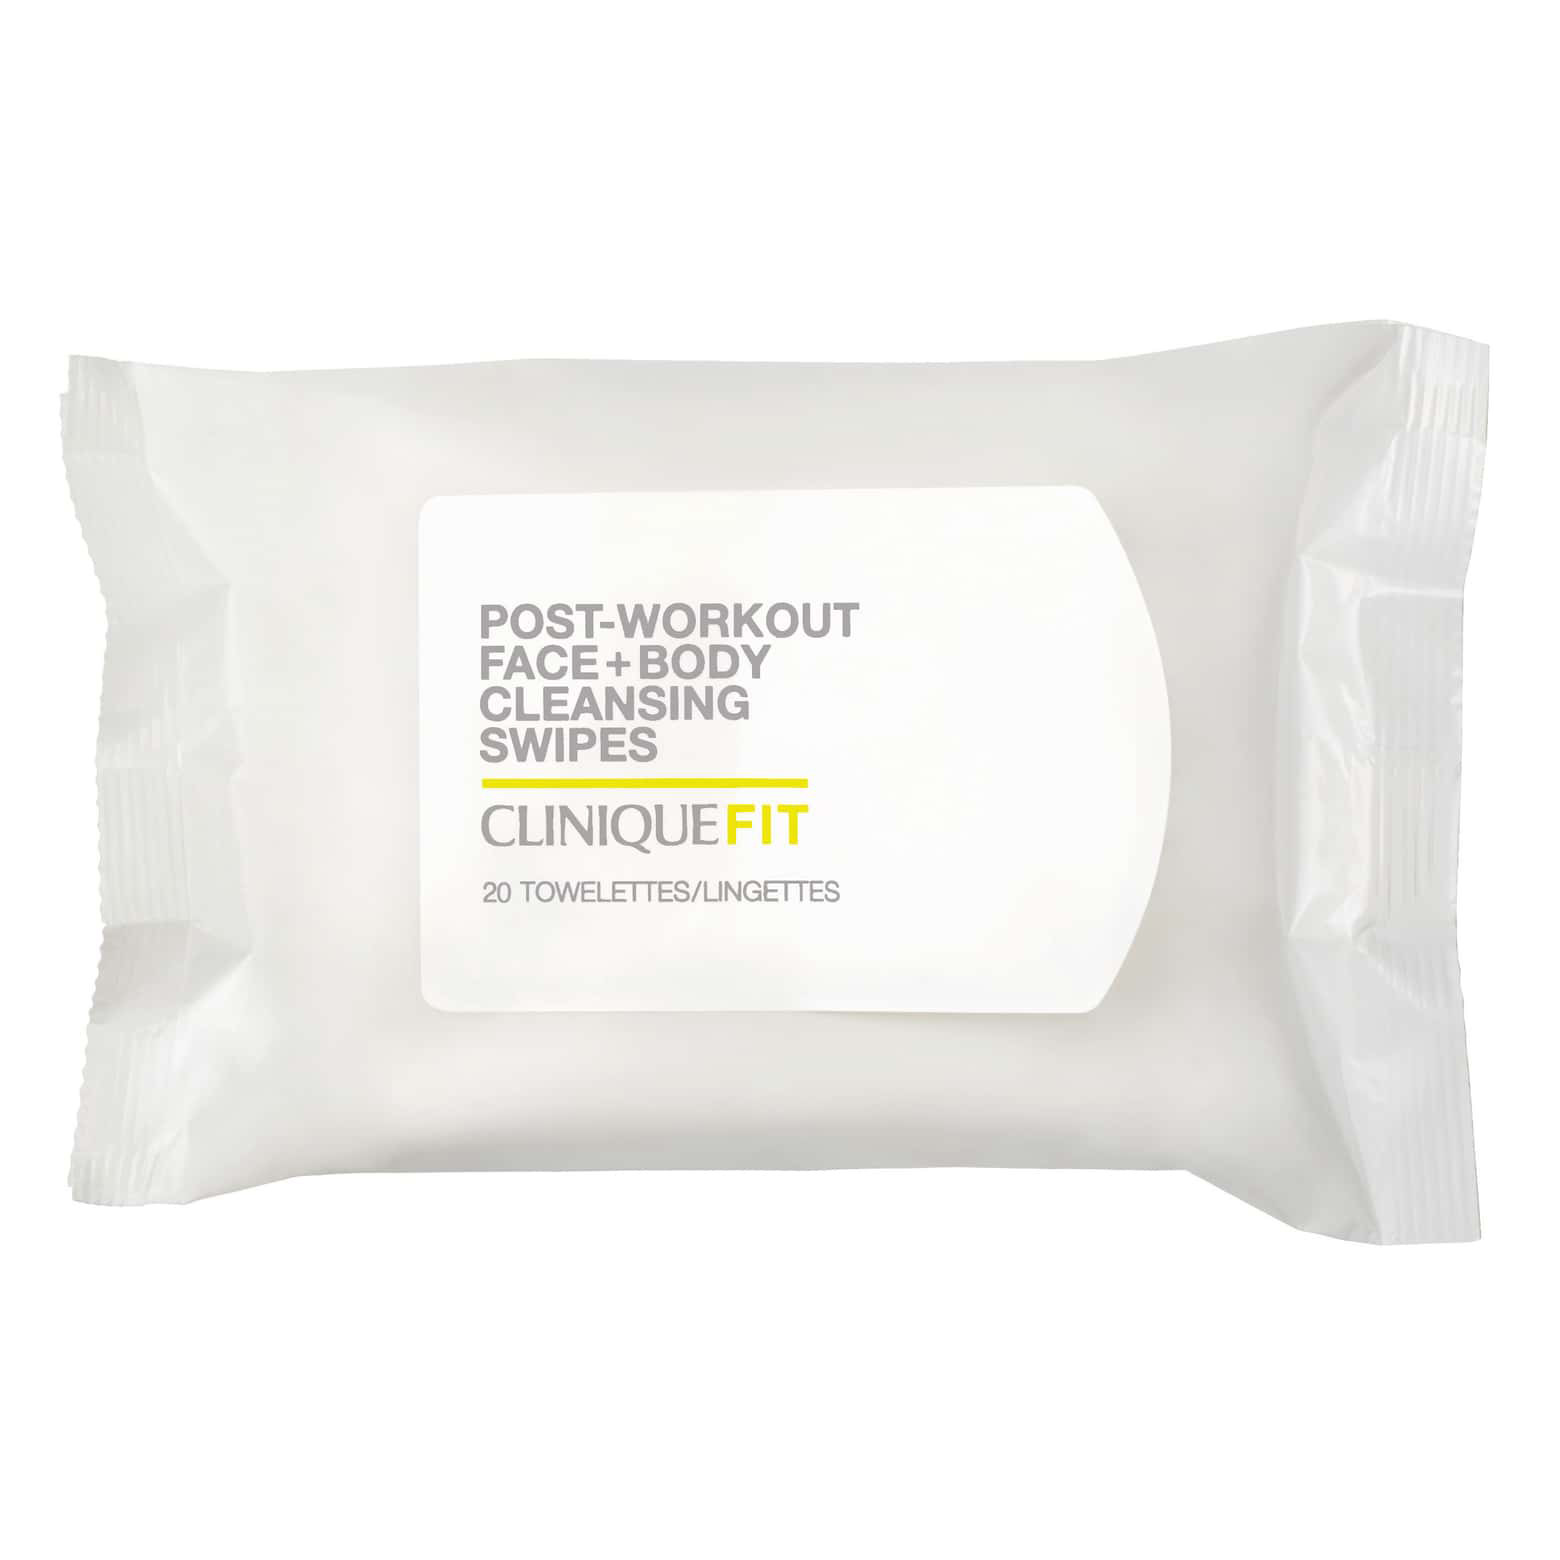 43669f407c51 These fragrance-free on-the-go wipes help keep breakouts at bay by removing  sweat